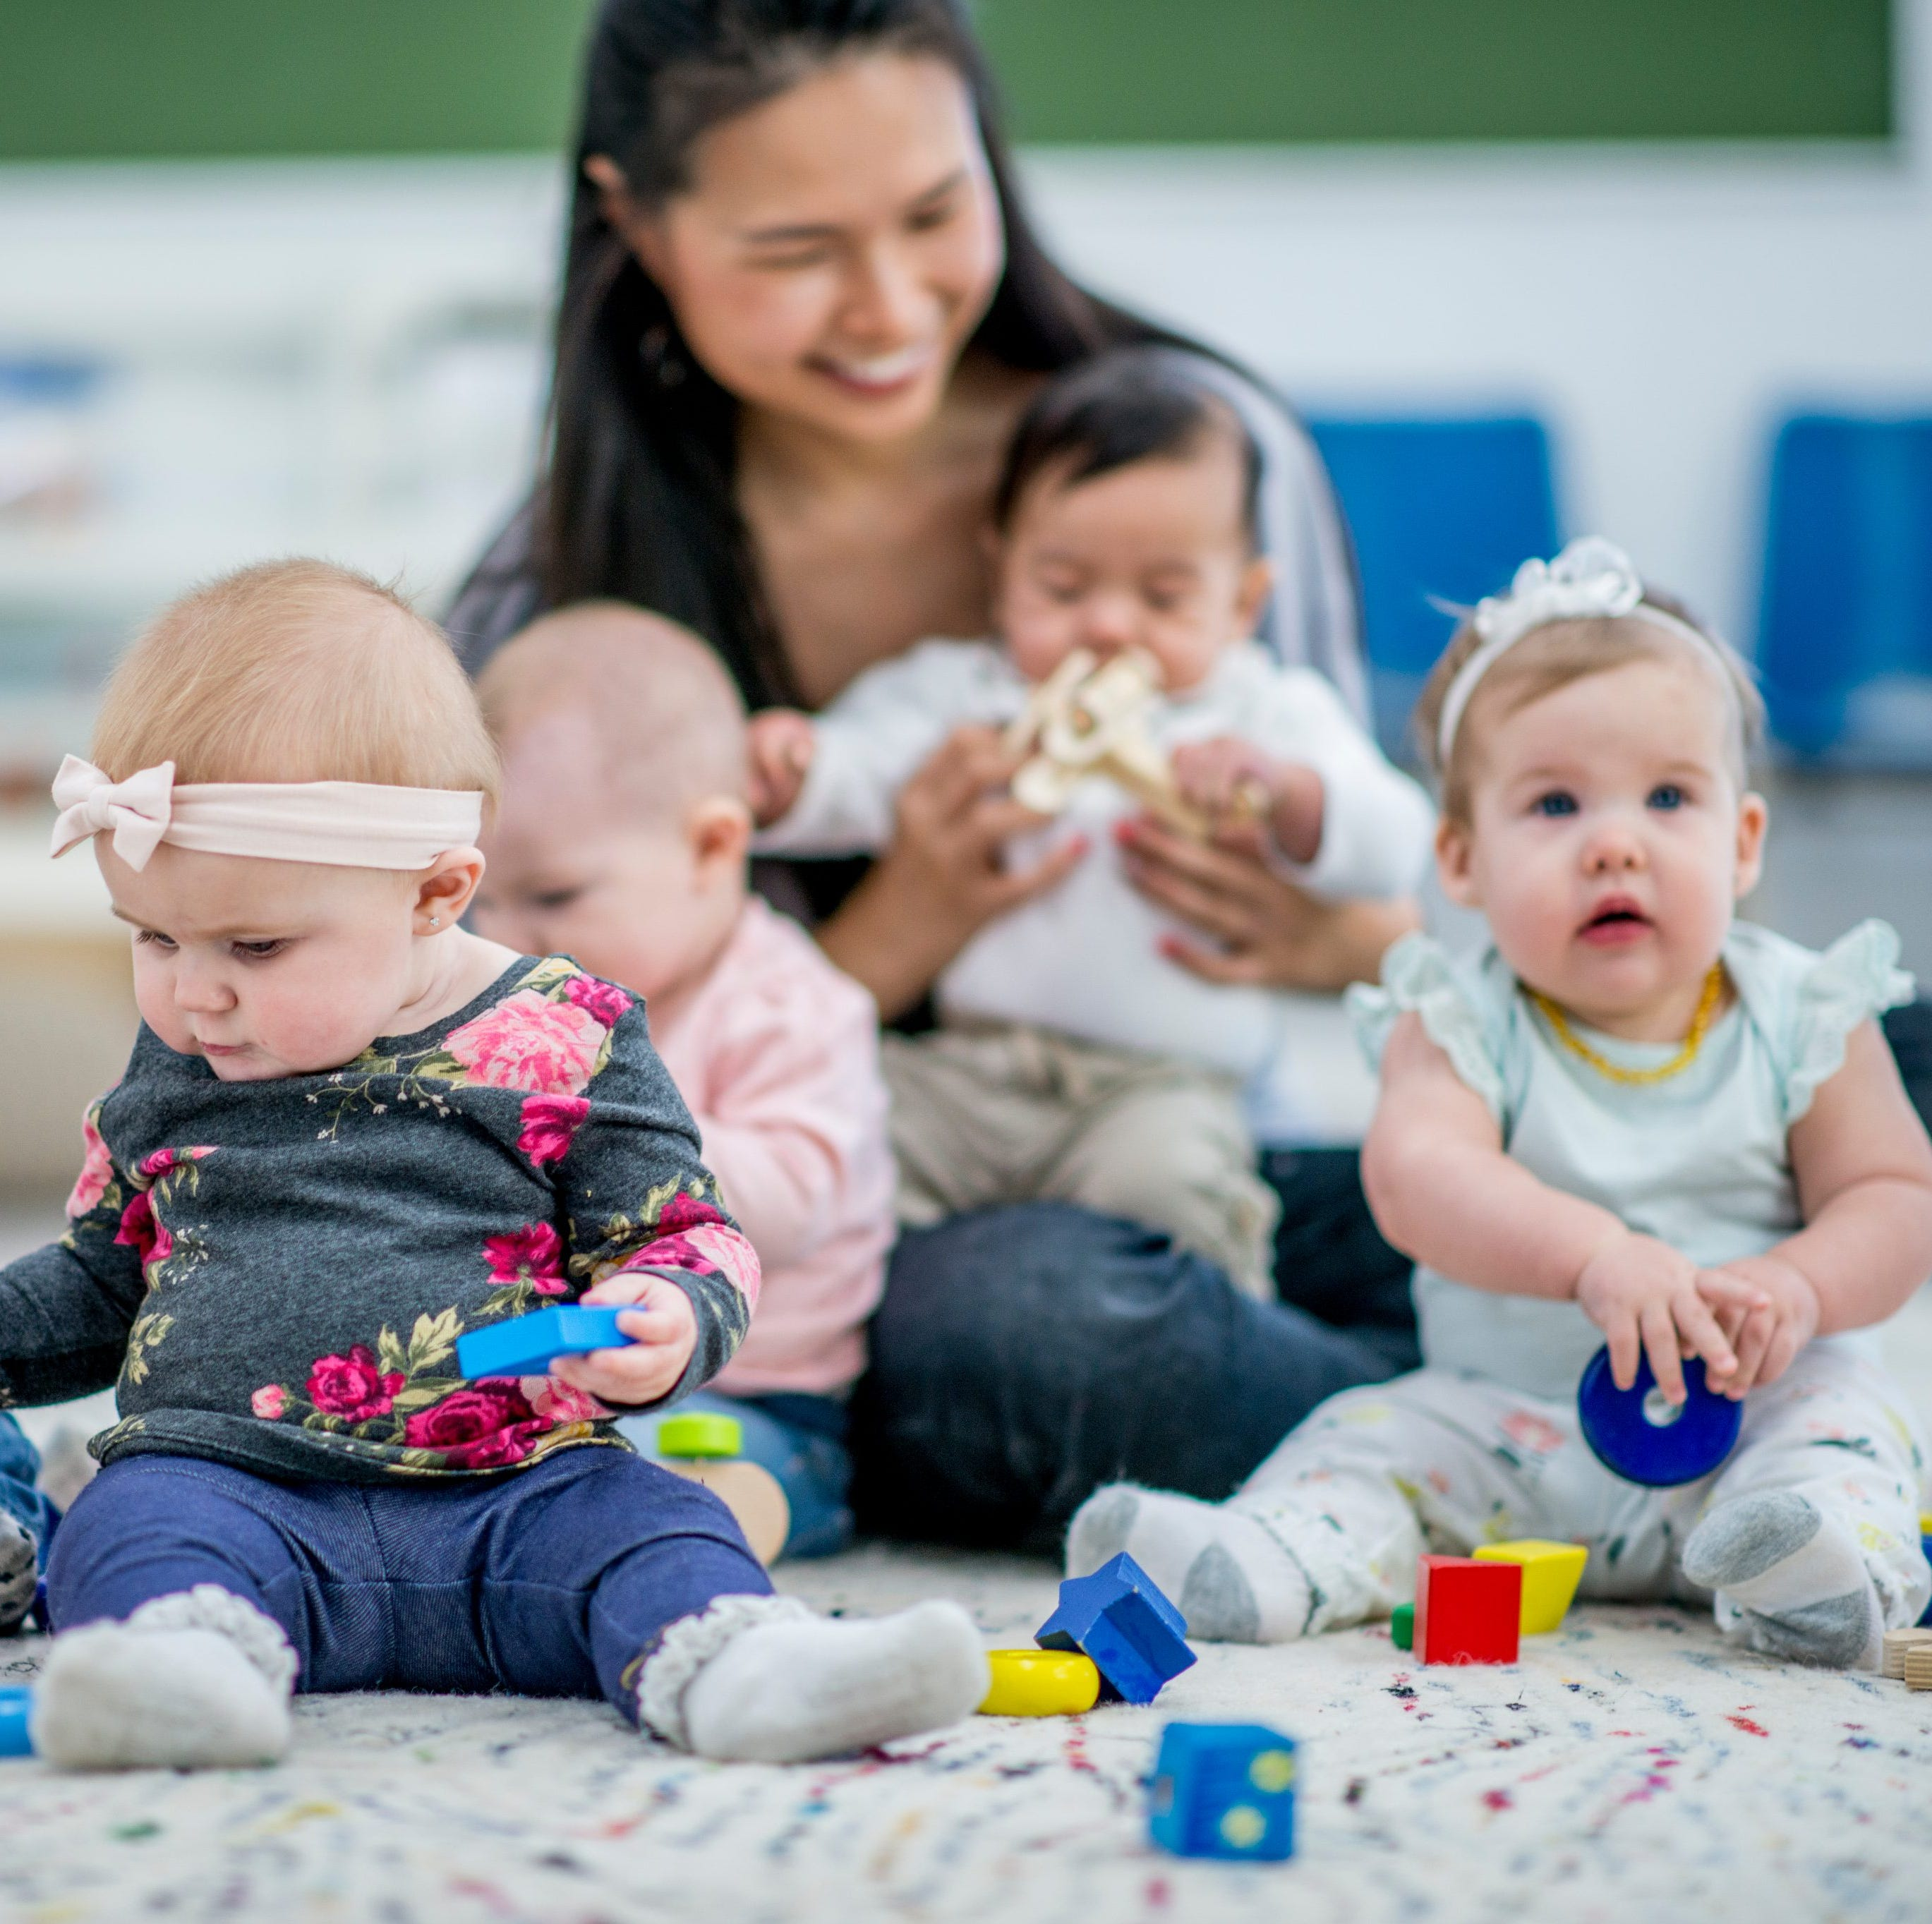 Wallethub released its ranking for the best and worst states to have a baby.